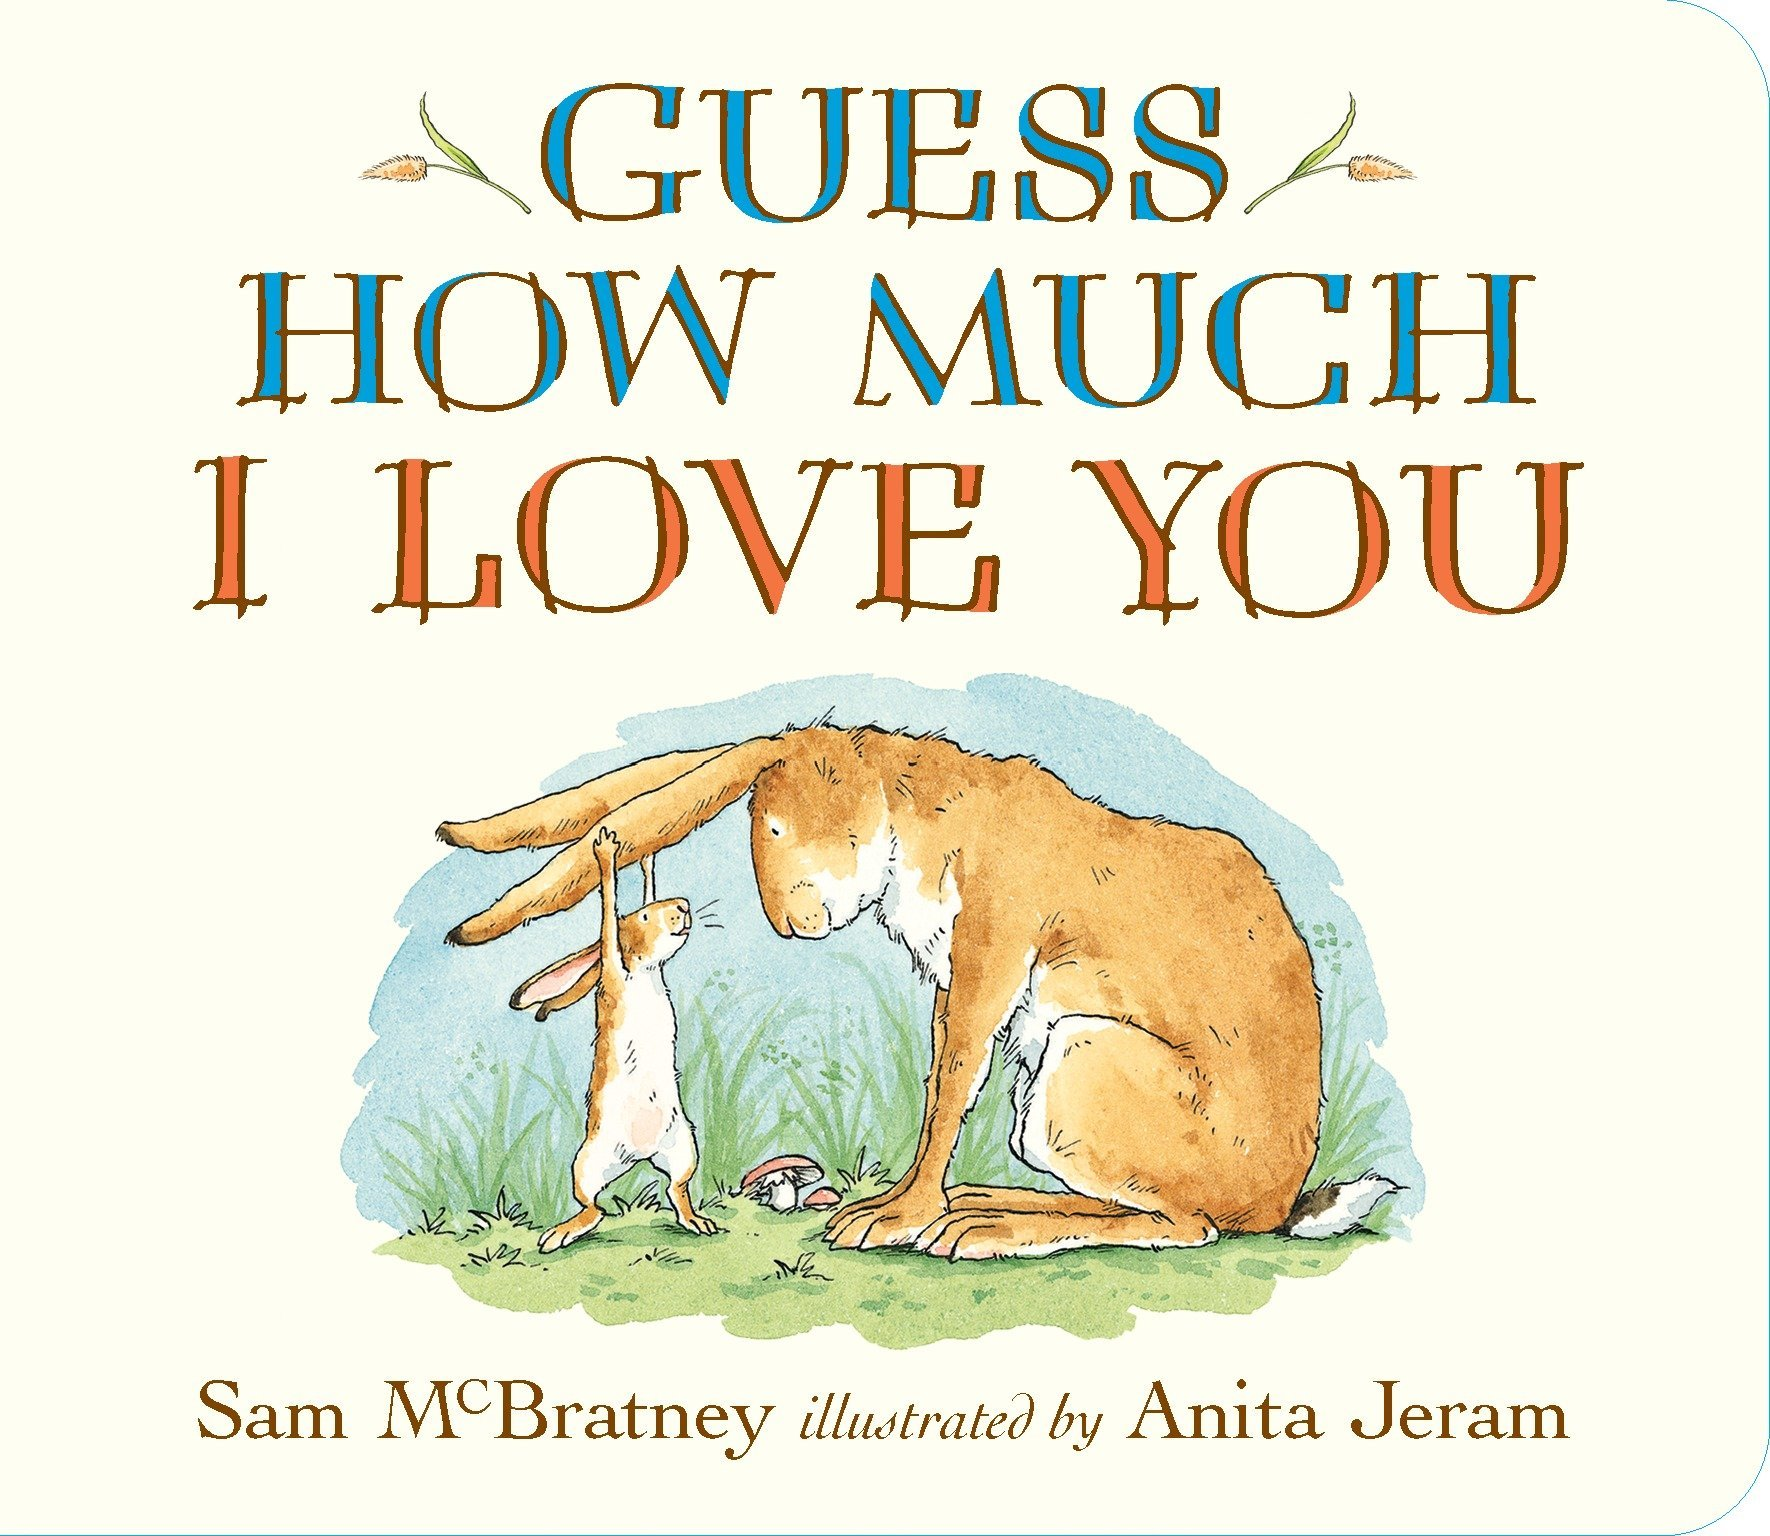 Guess How Much I Love You Board book – October 14, 2008 Sam McBratney Anita Jeram Candlewick 0763642649